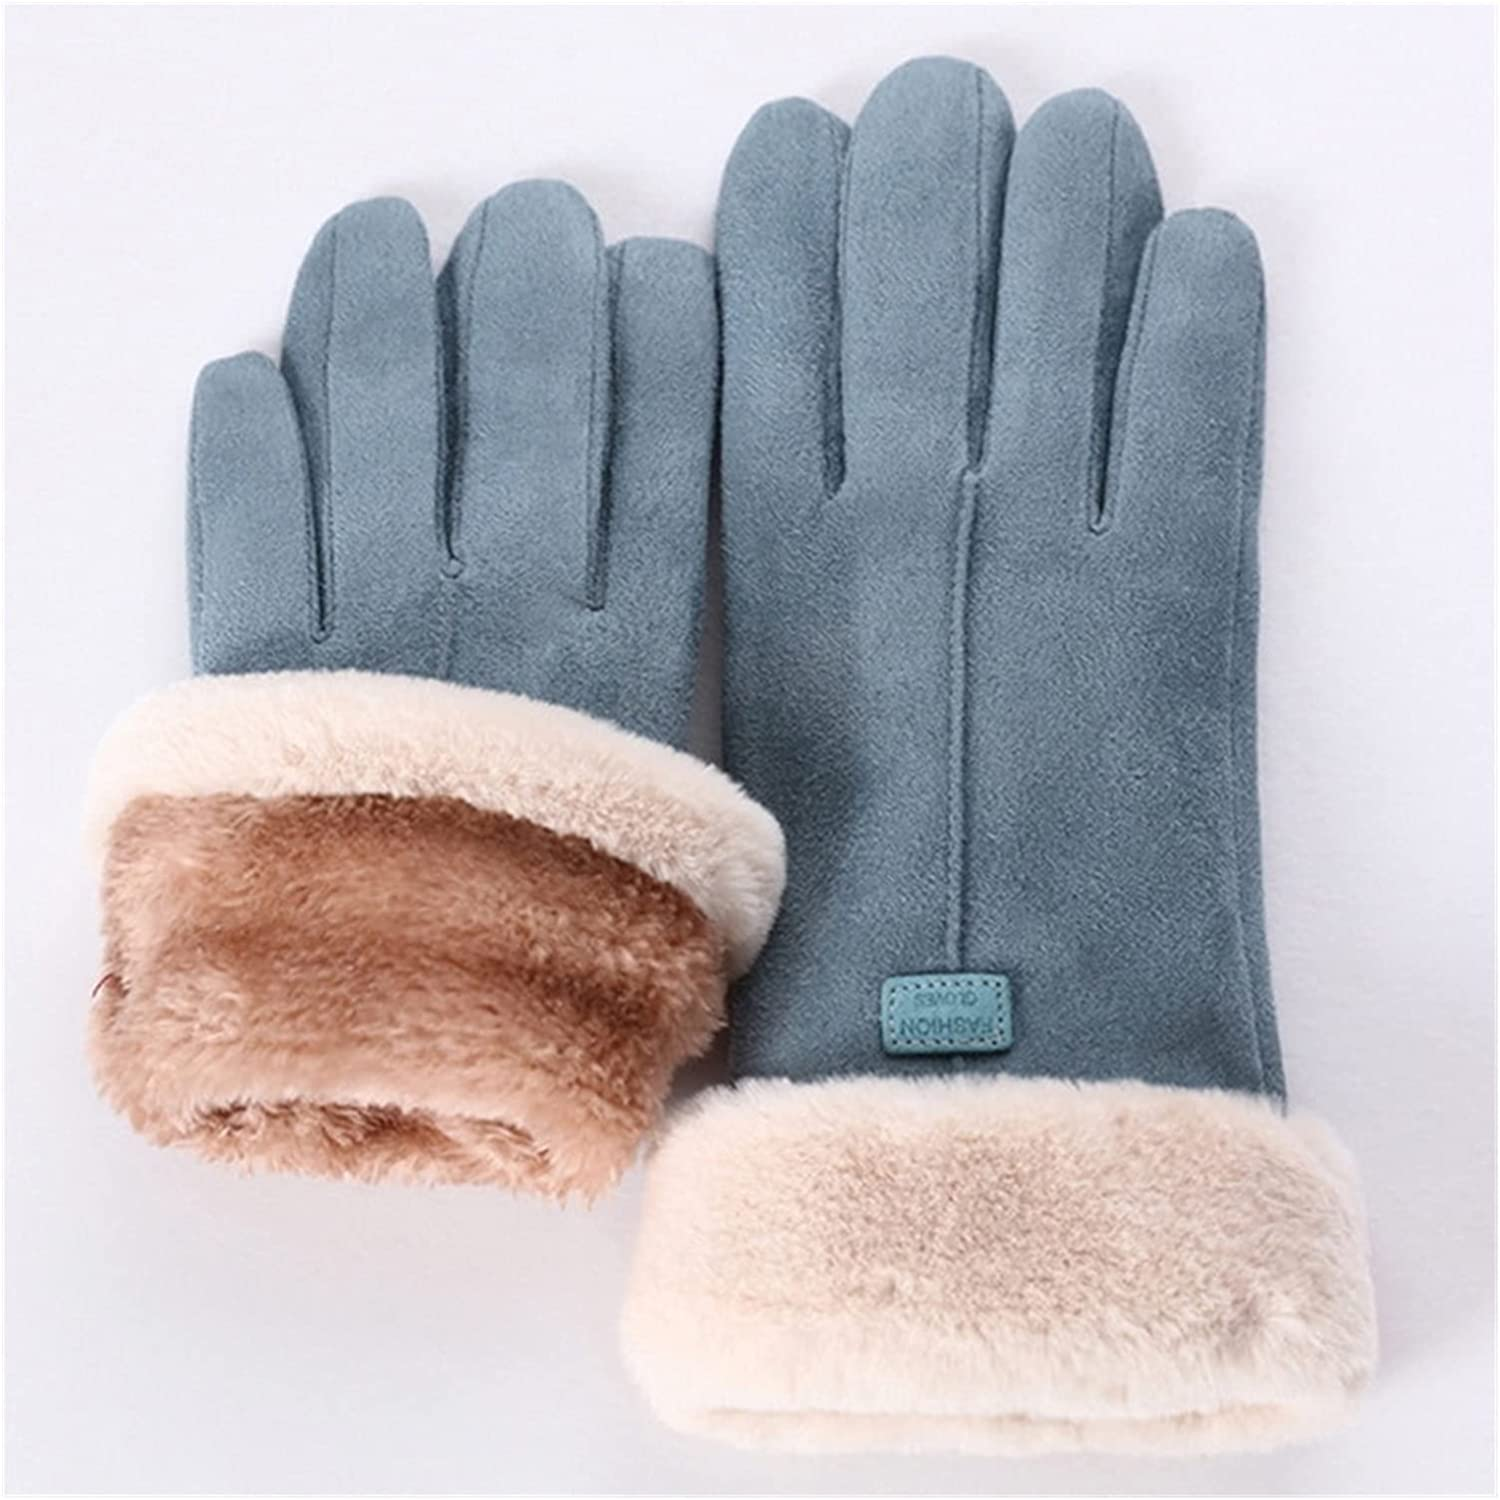 DMYONGLIAN Lace Gloves New Winter Female Lace Warm Cashmere Three Ribs Cute Bear Mittens Double Thick Plush Wrist Women Touch Screen Driving Accessories (Color : E822699, Gloves Size : One Size)